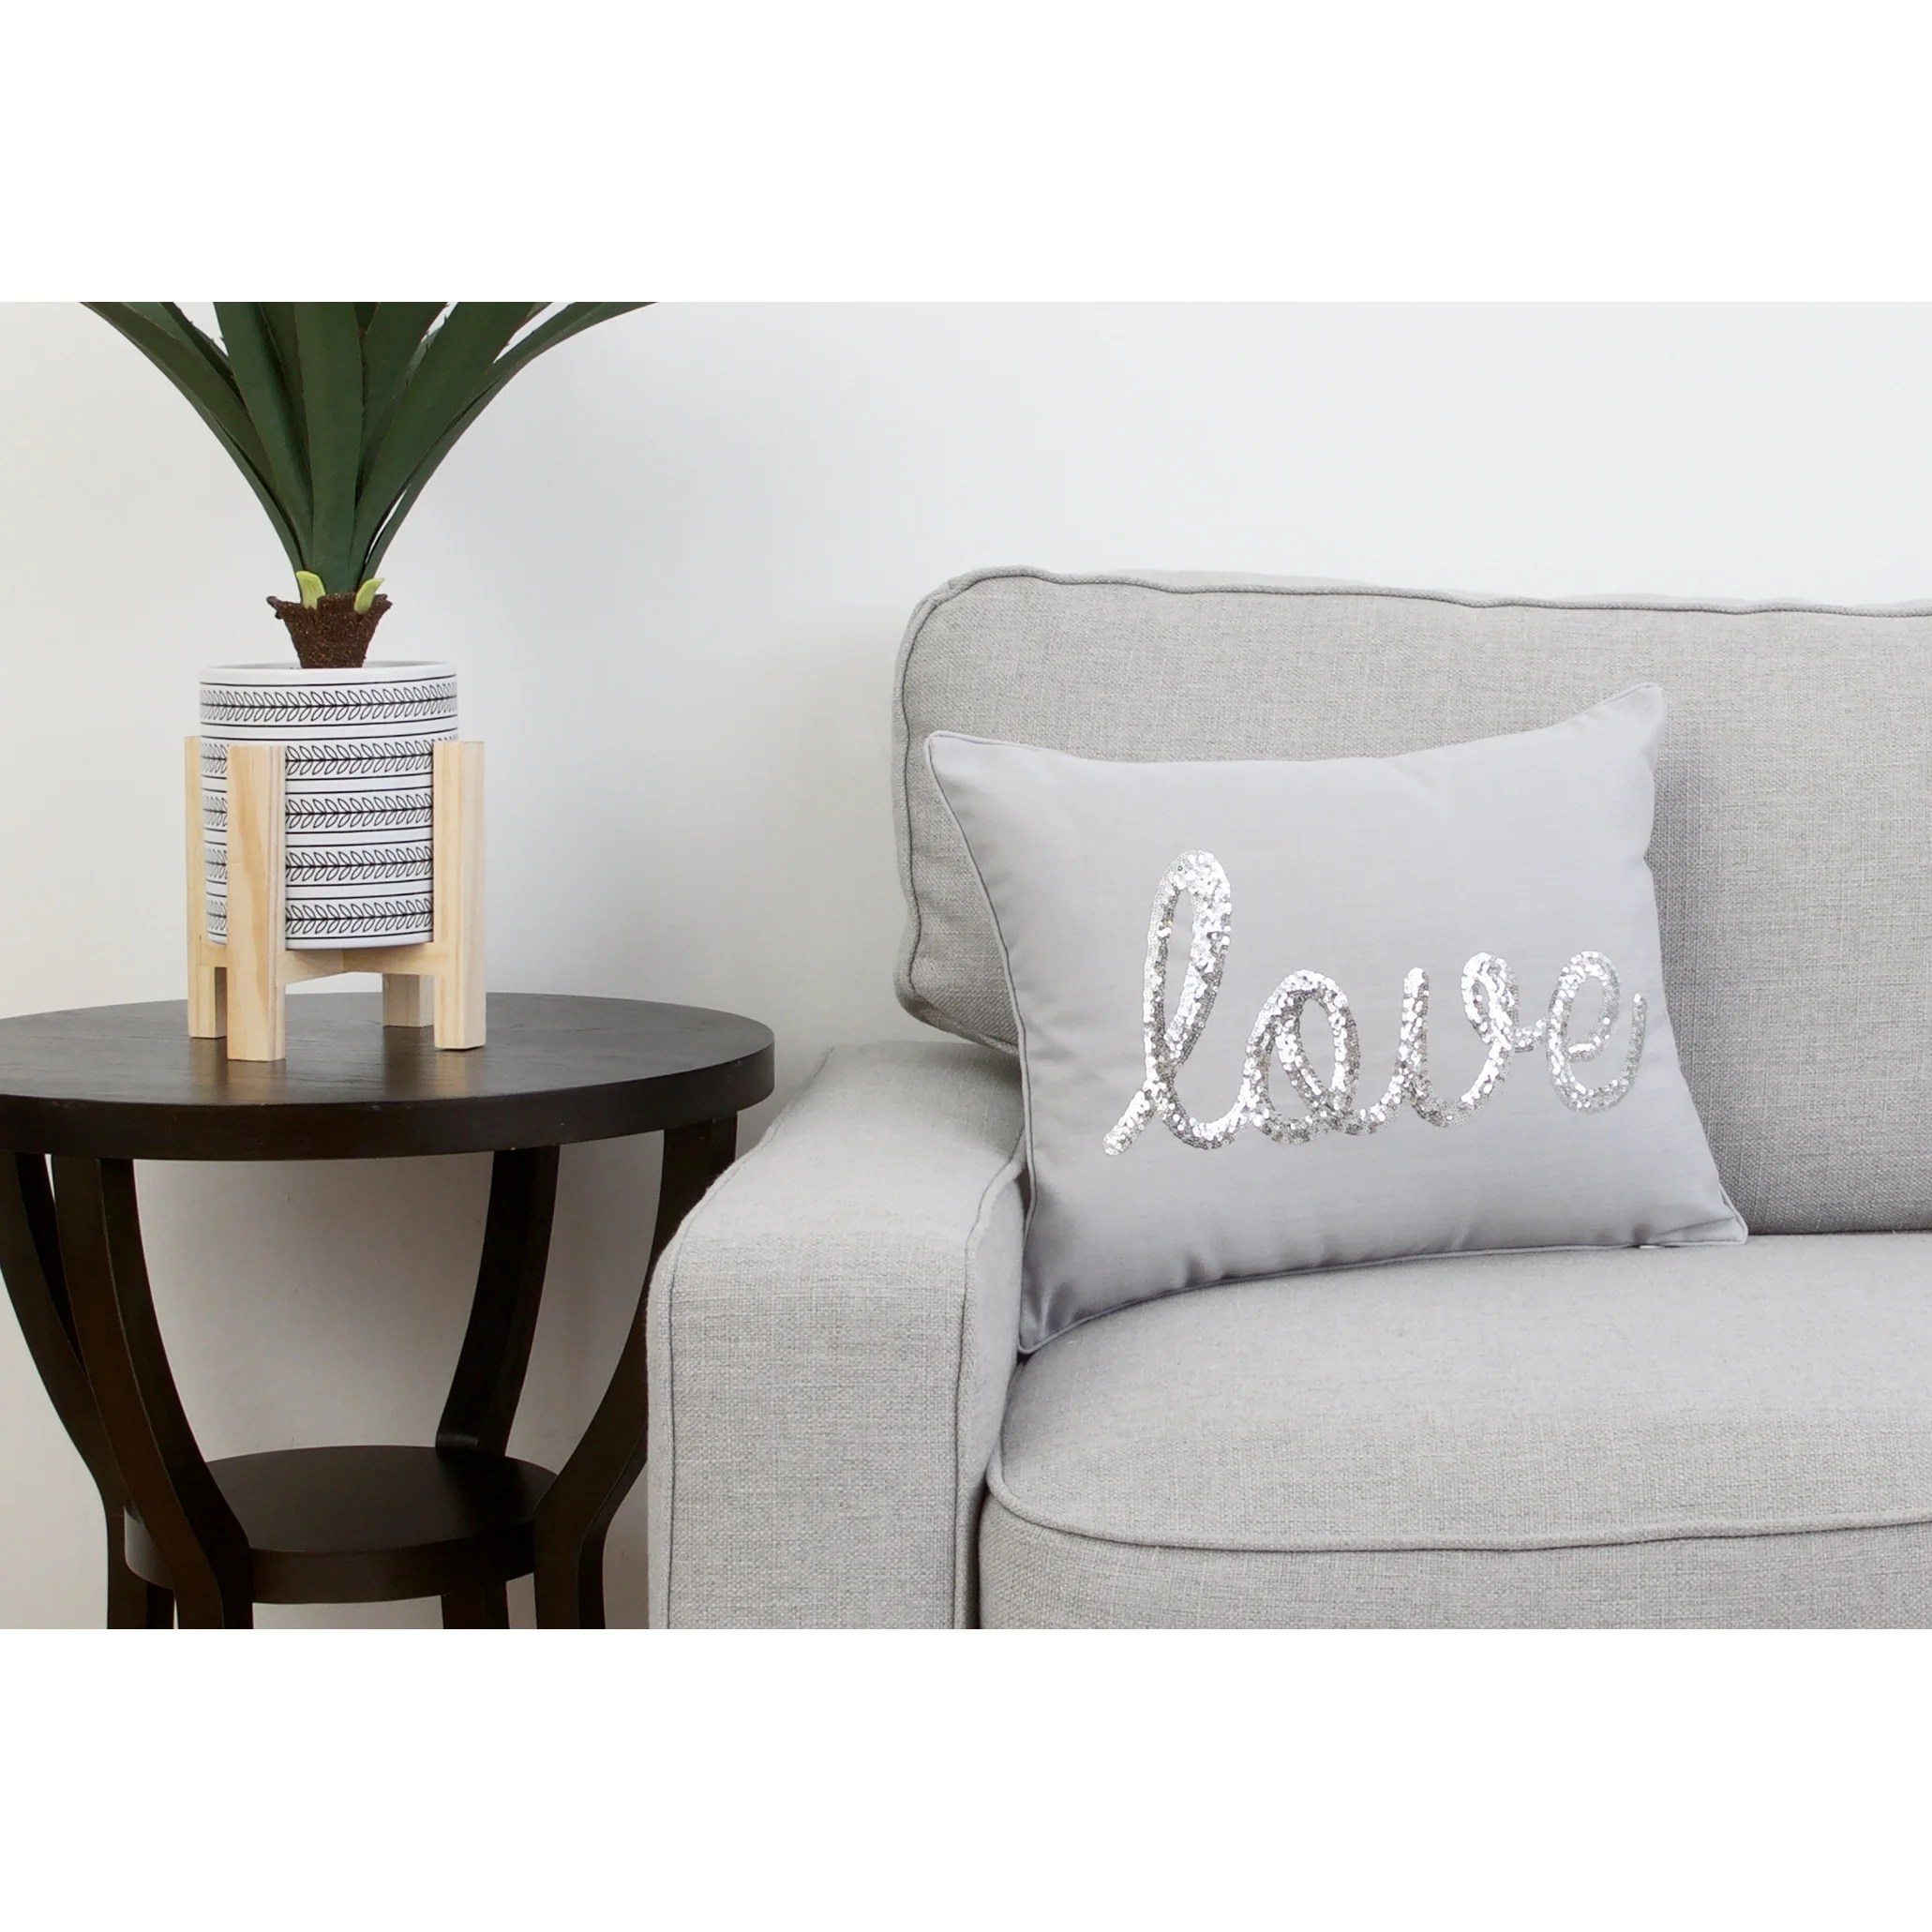 thro by marlo lorenz love sequined feather filled decorative throw pillow